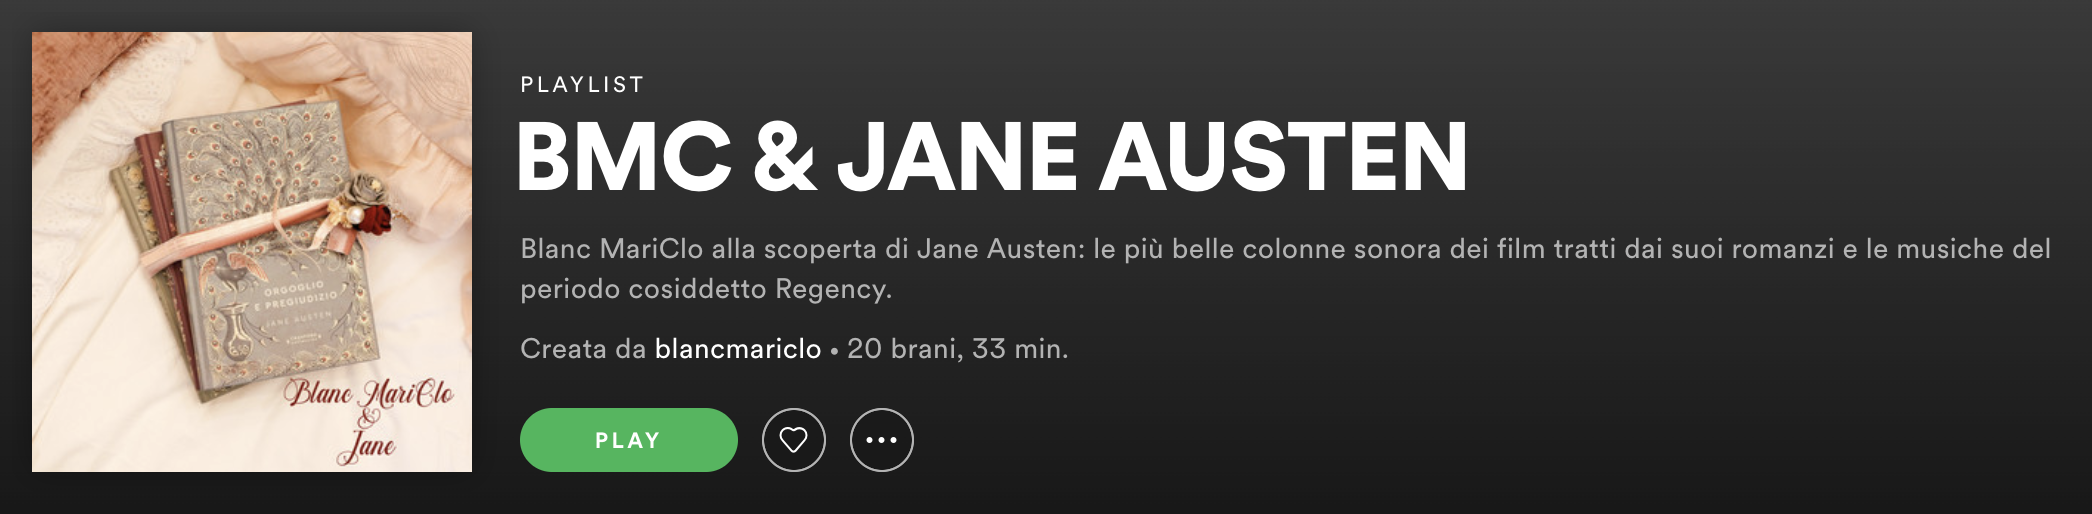 Blanc MariClo' - Jane Austen Playlist